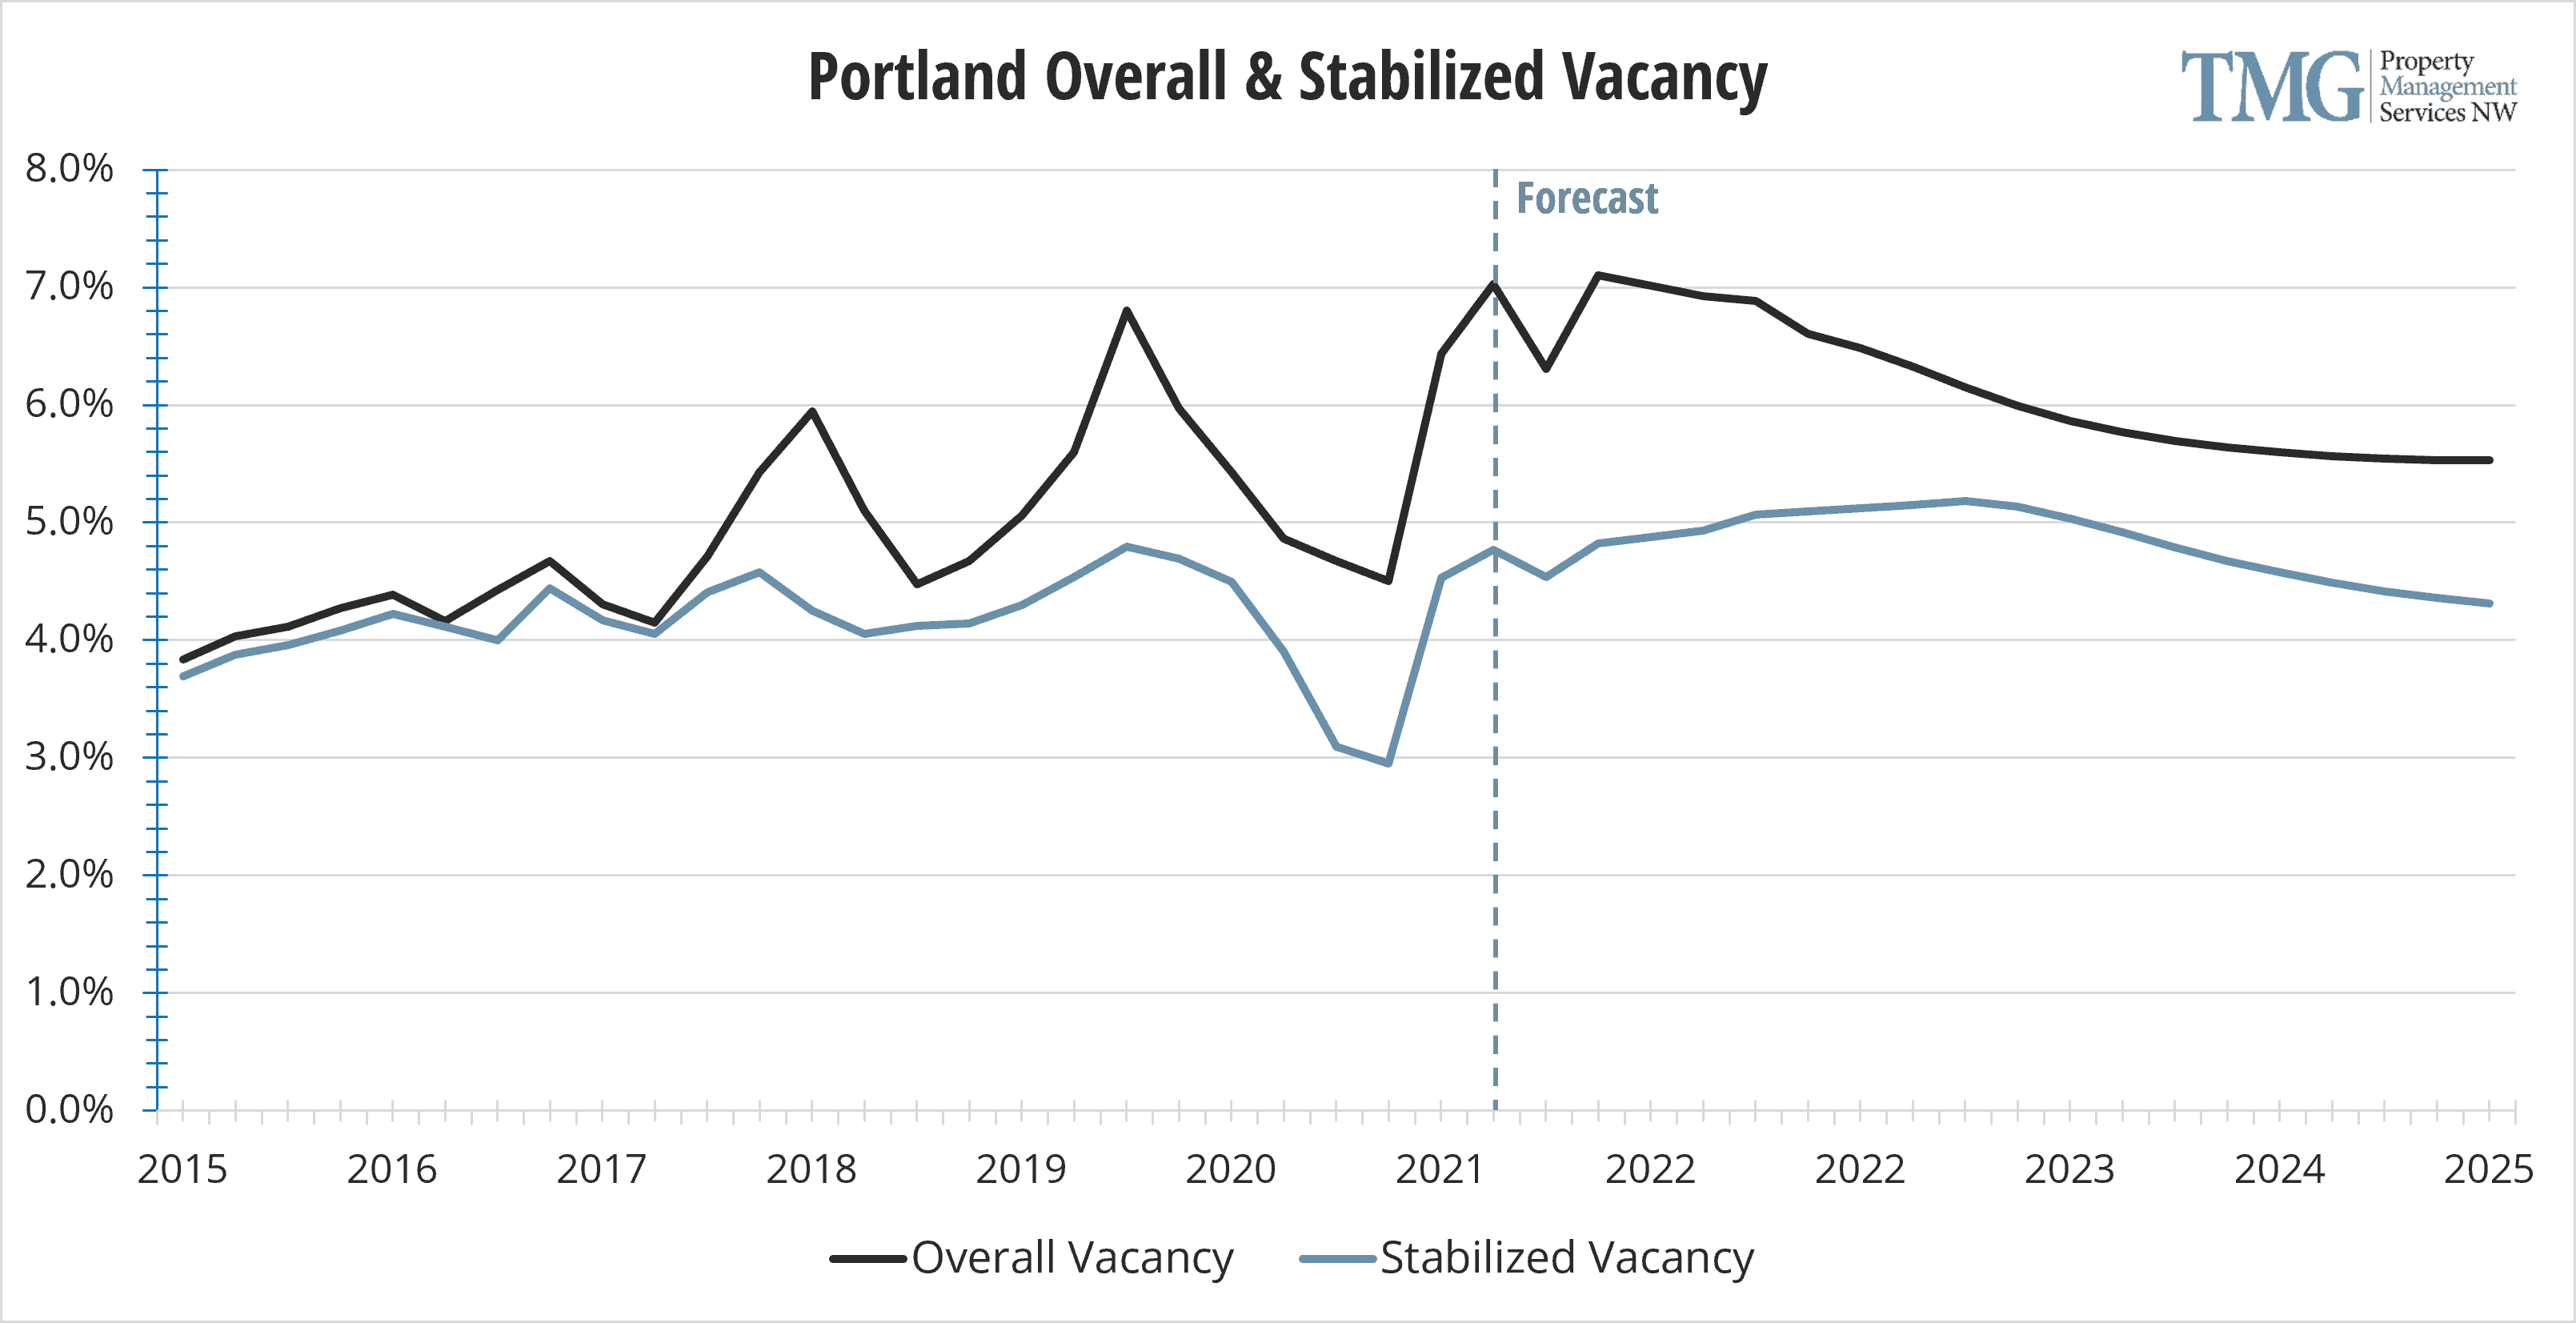 Portland Q1 2021 Overall & Stabilized Vacancy